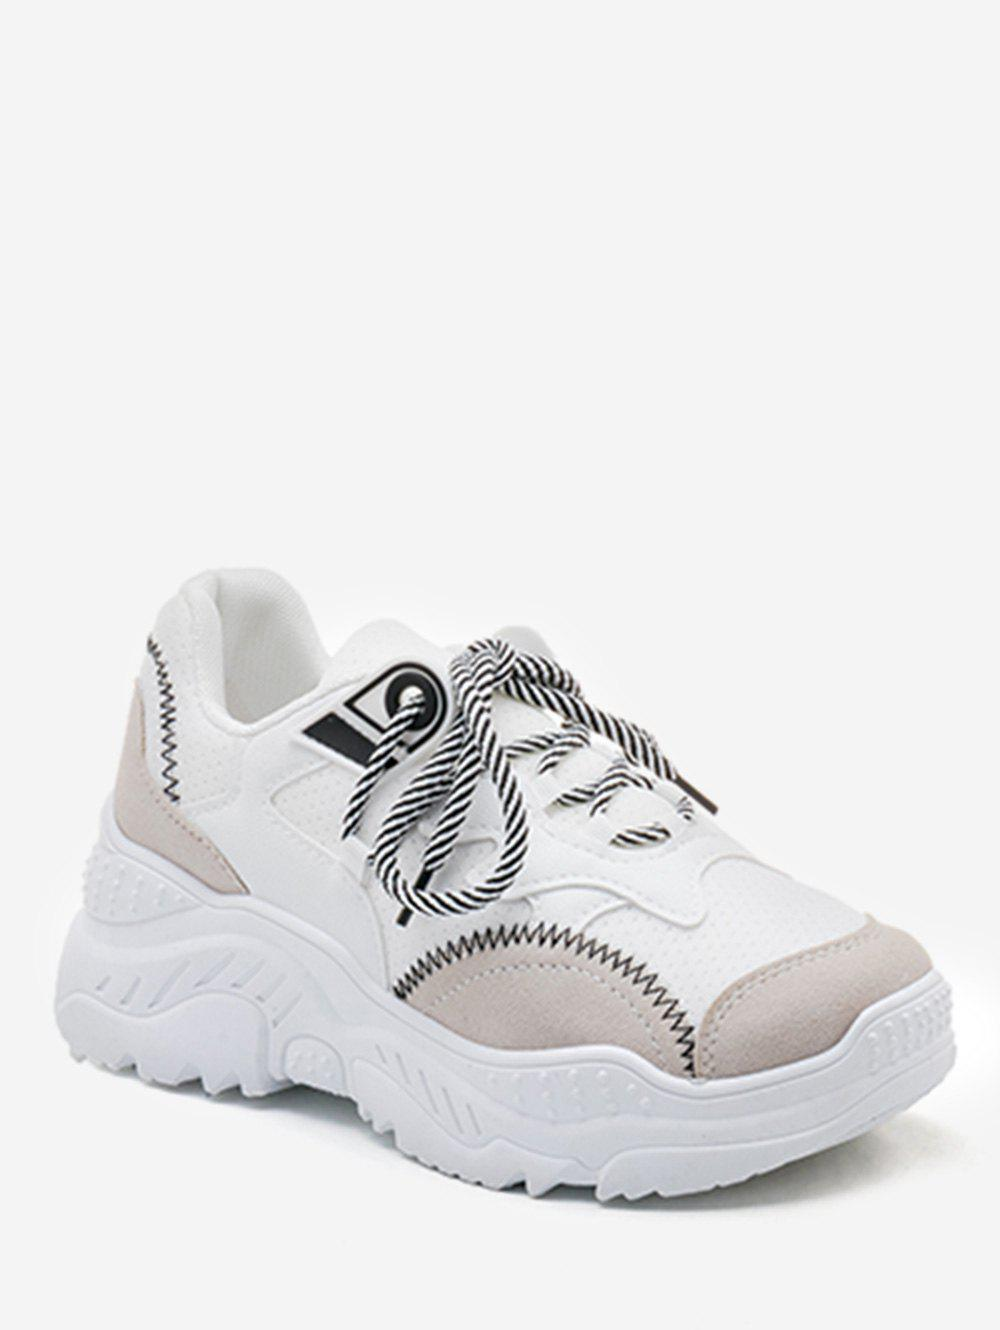 Sale Contrasting Color Leisure Lace Up Sneakers